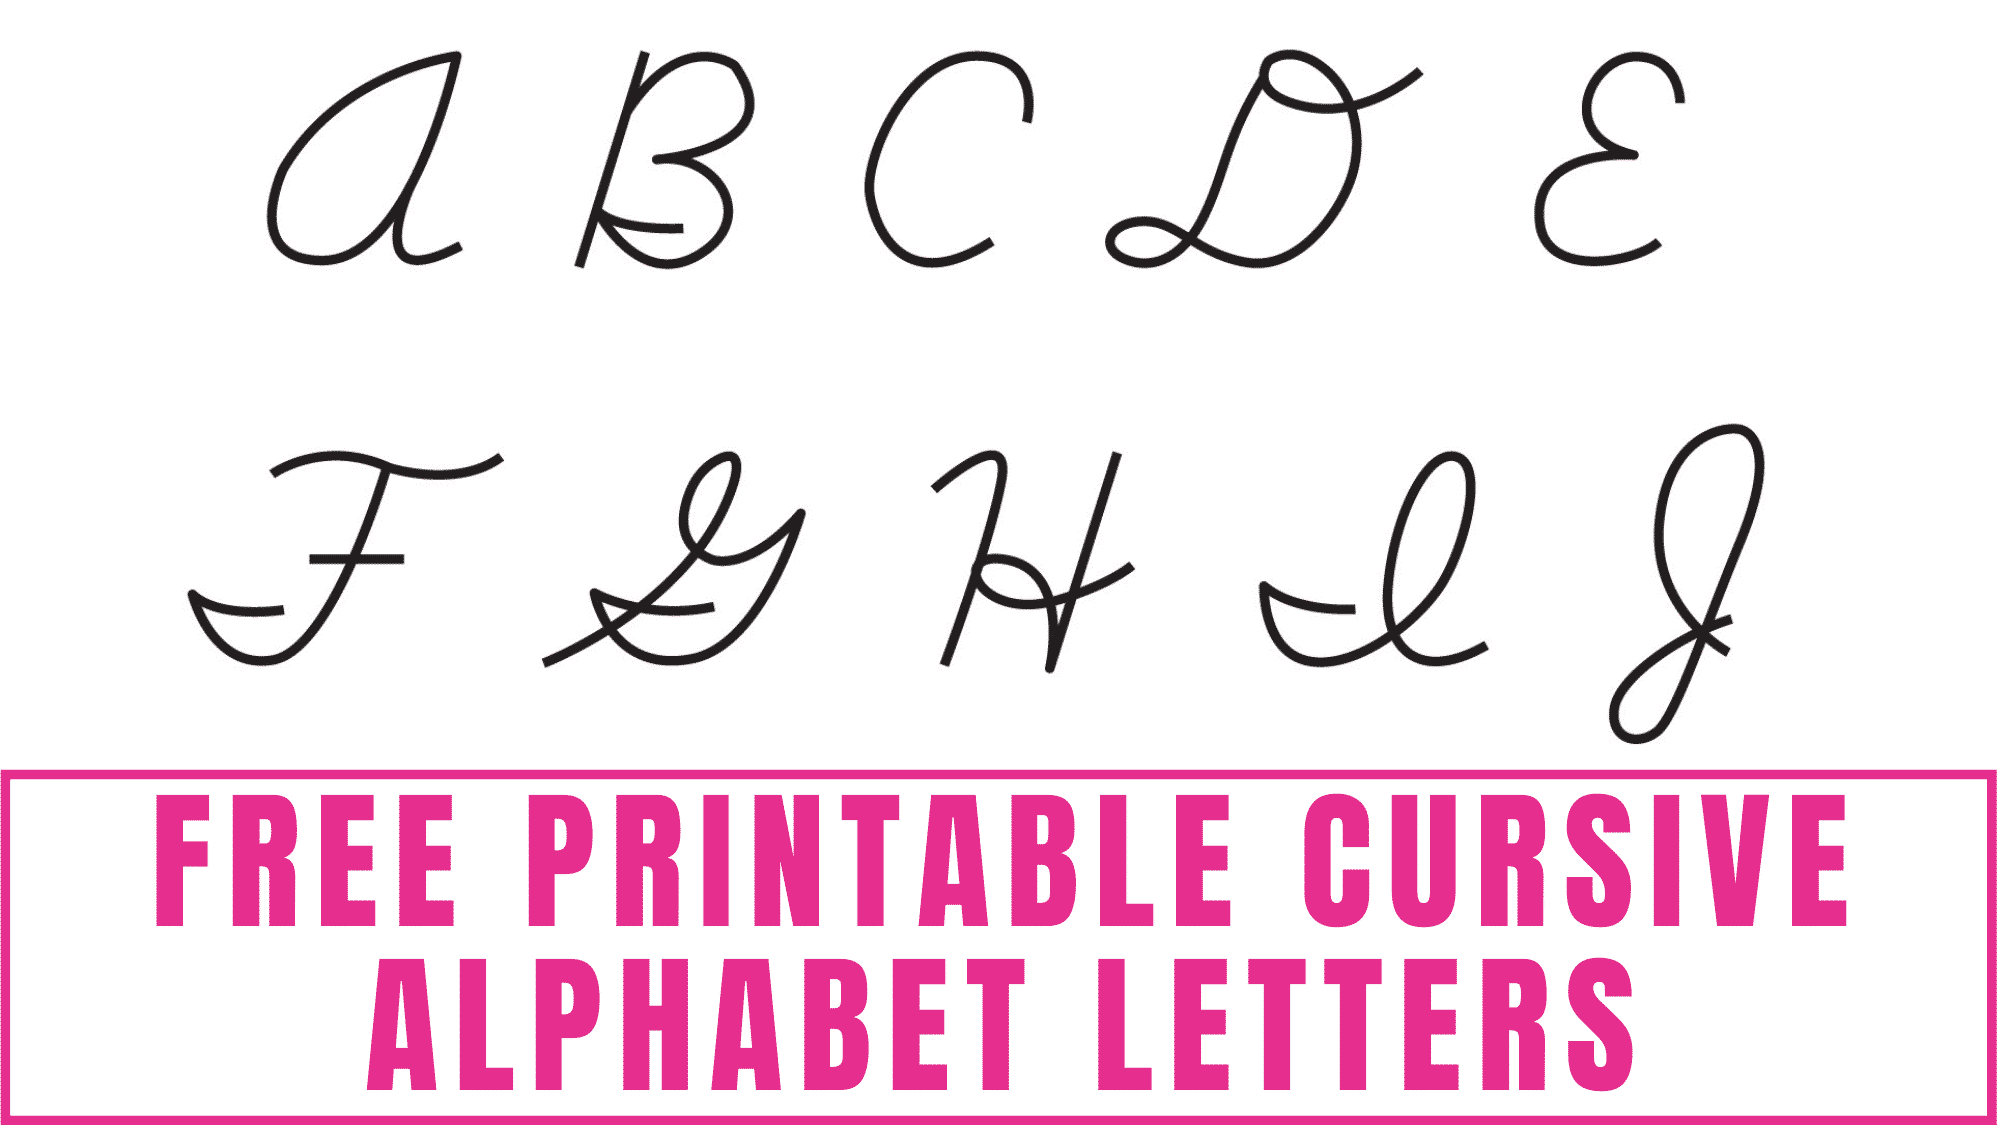 Use these free printable cursive alphabet letters to learn how to write cursive letters.